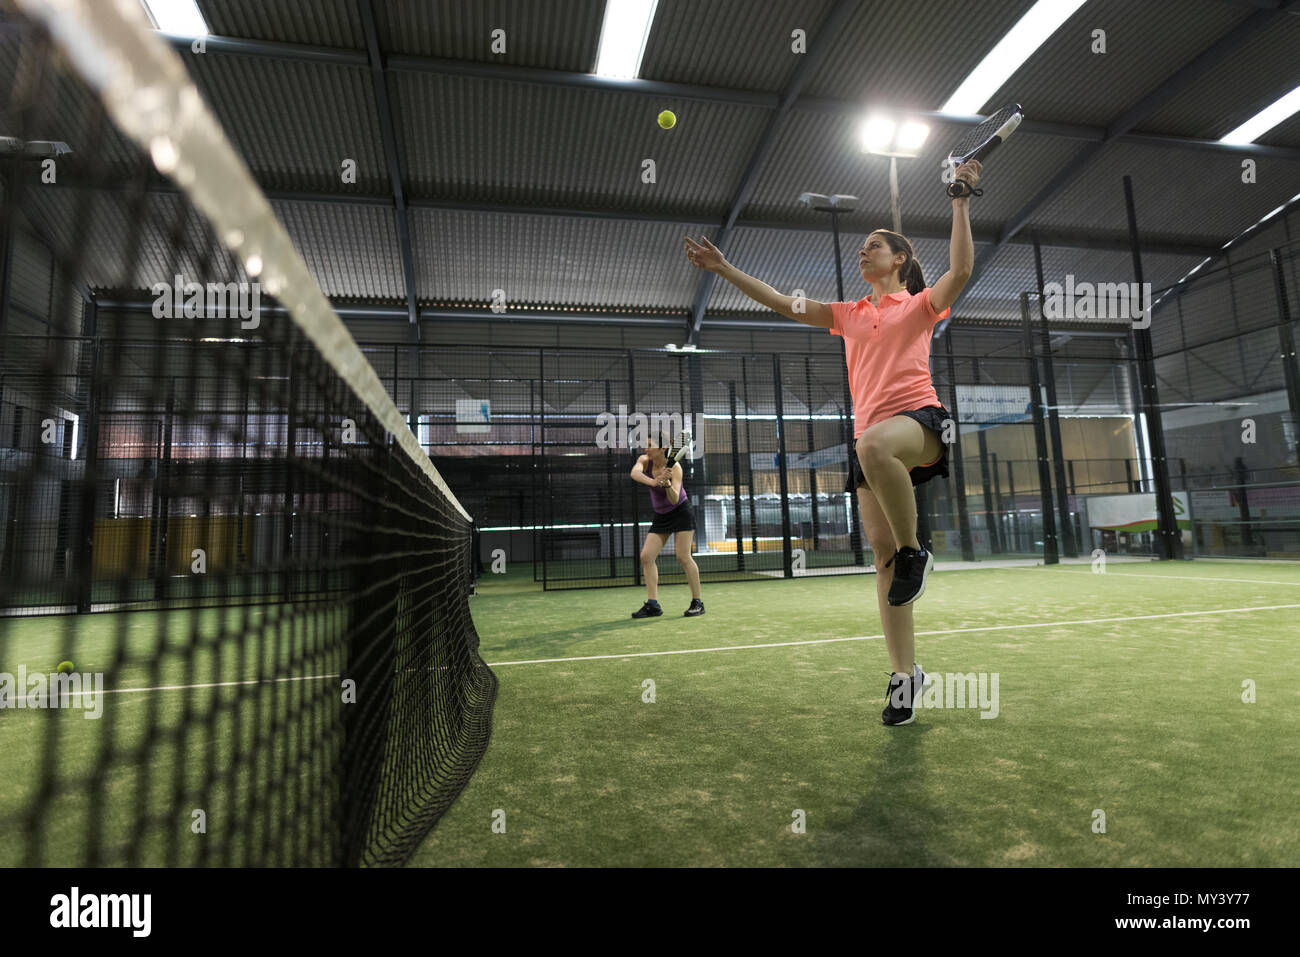 Paddle tennis player woman smashing ball in match while jumping - Stock Image